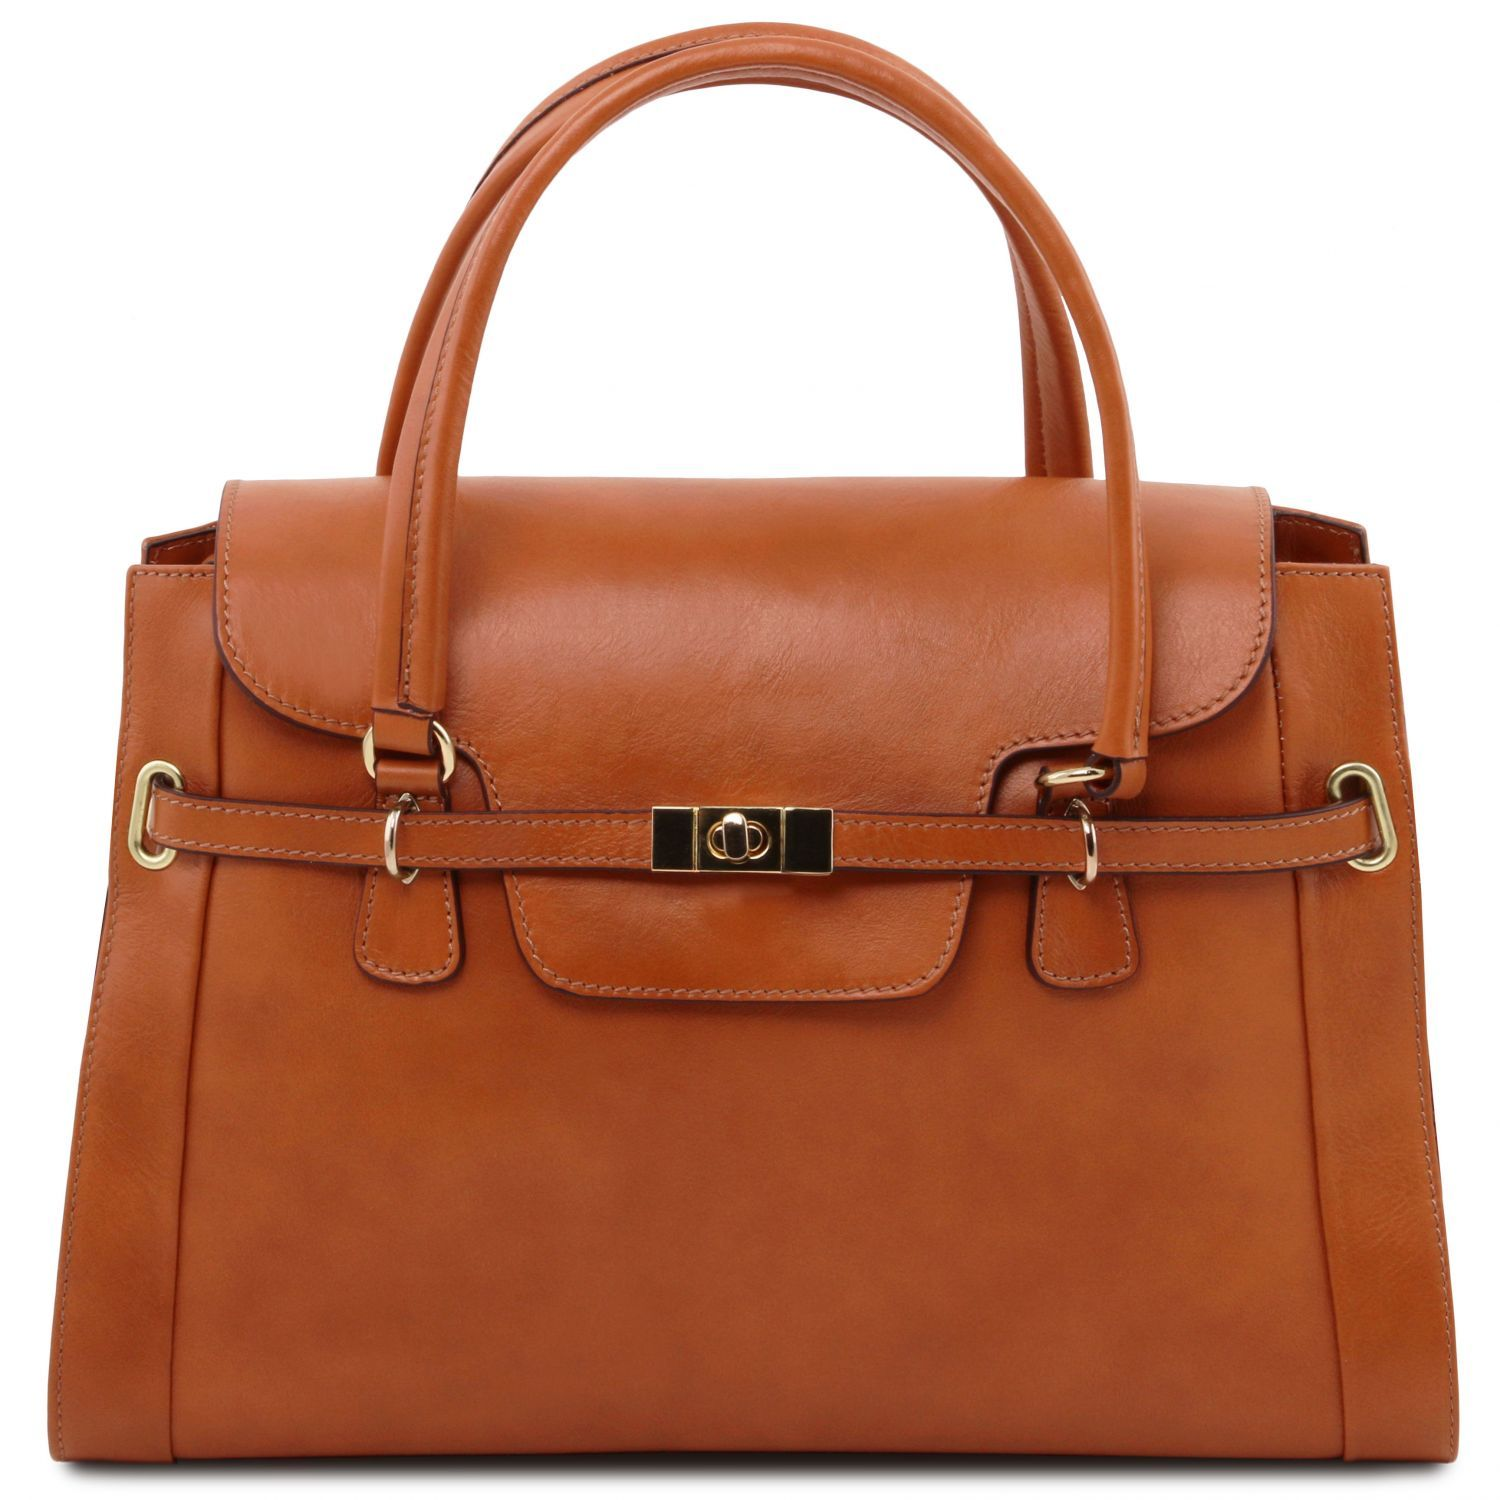 TL NeoClassic - Lady leather handbag with twist lock - Handbags | DILUSSOBAGS